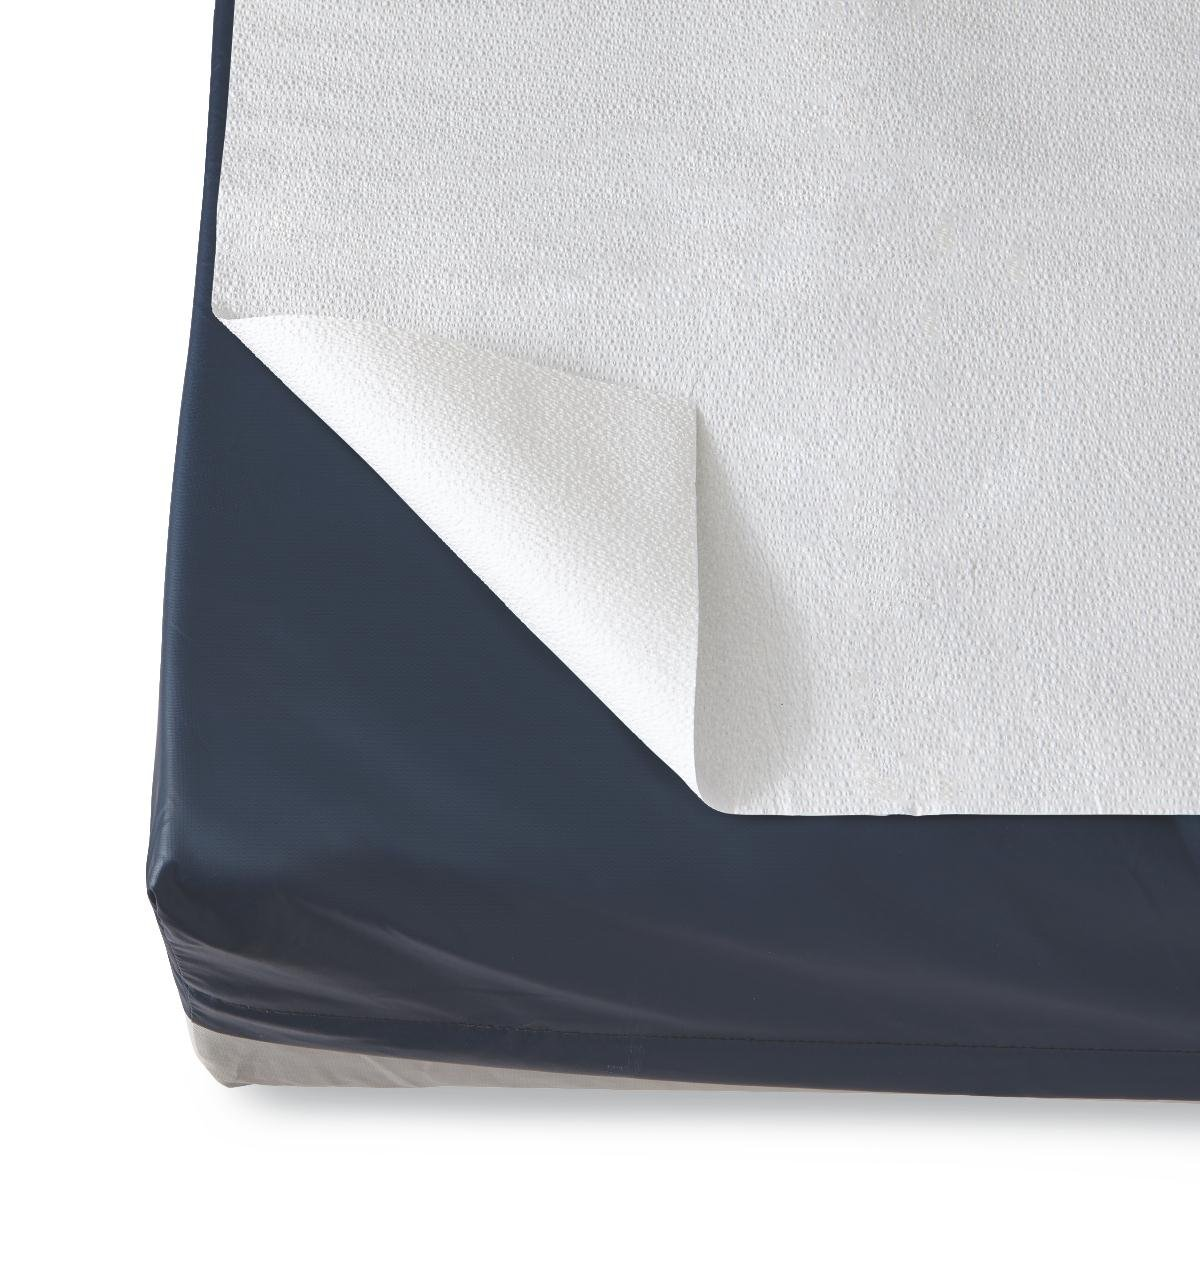 MEDLINE NON24339A 2-Ply All Tissue Drape Sheets (Pack of 100)